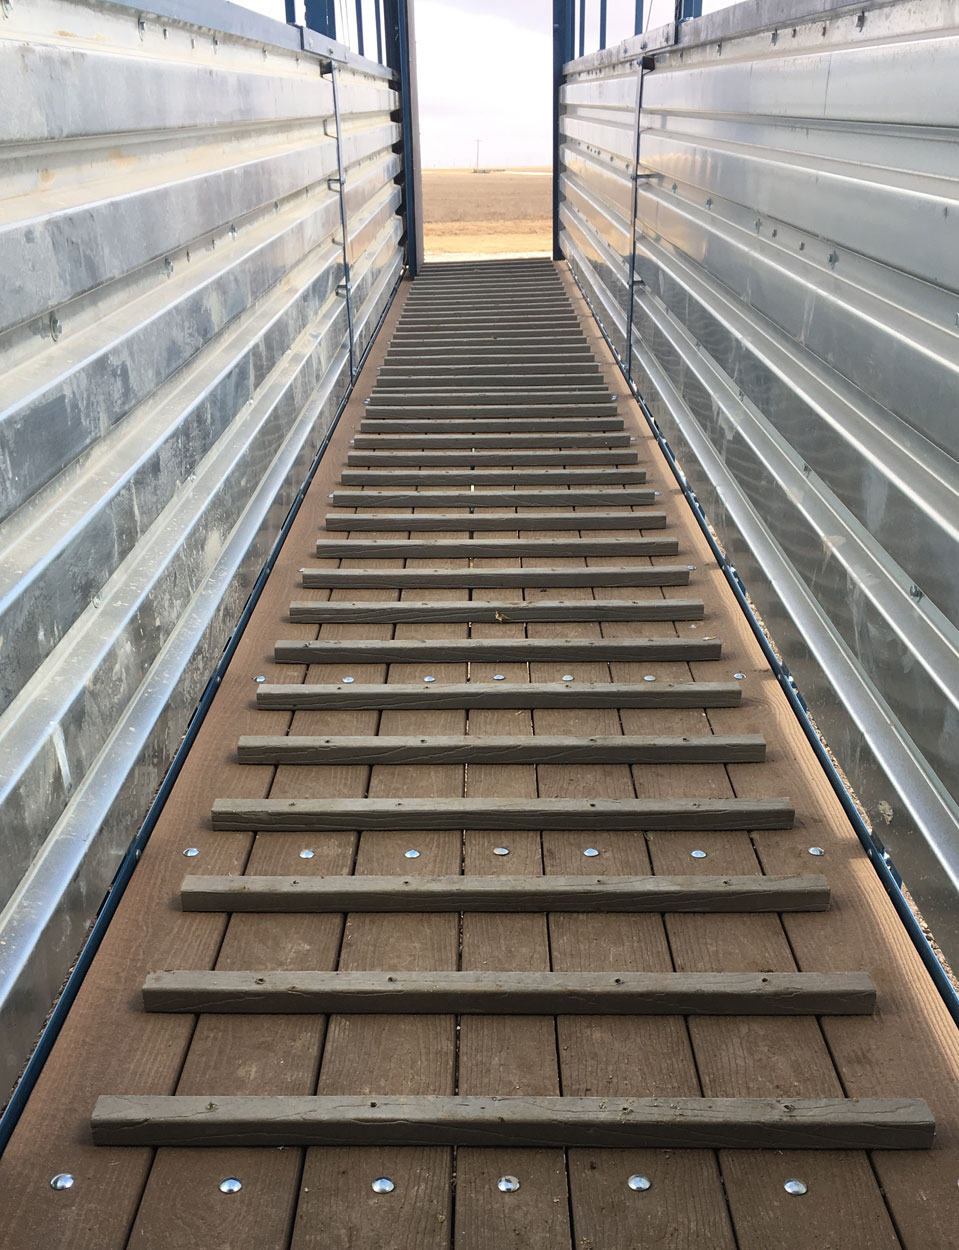 Hog Slat loading chutes feature floor pickets that provide additional traction for pigs when loading at steeper angles or during inclement weather conditions.